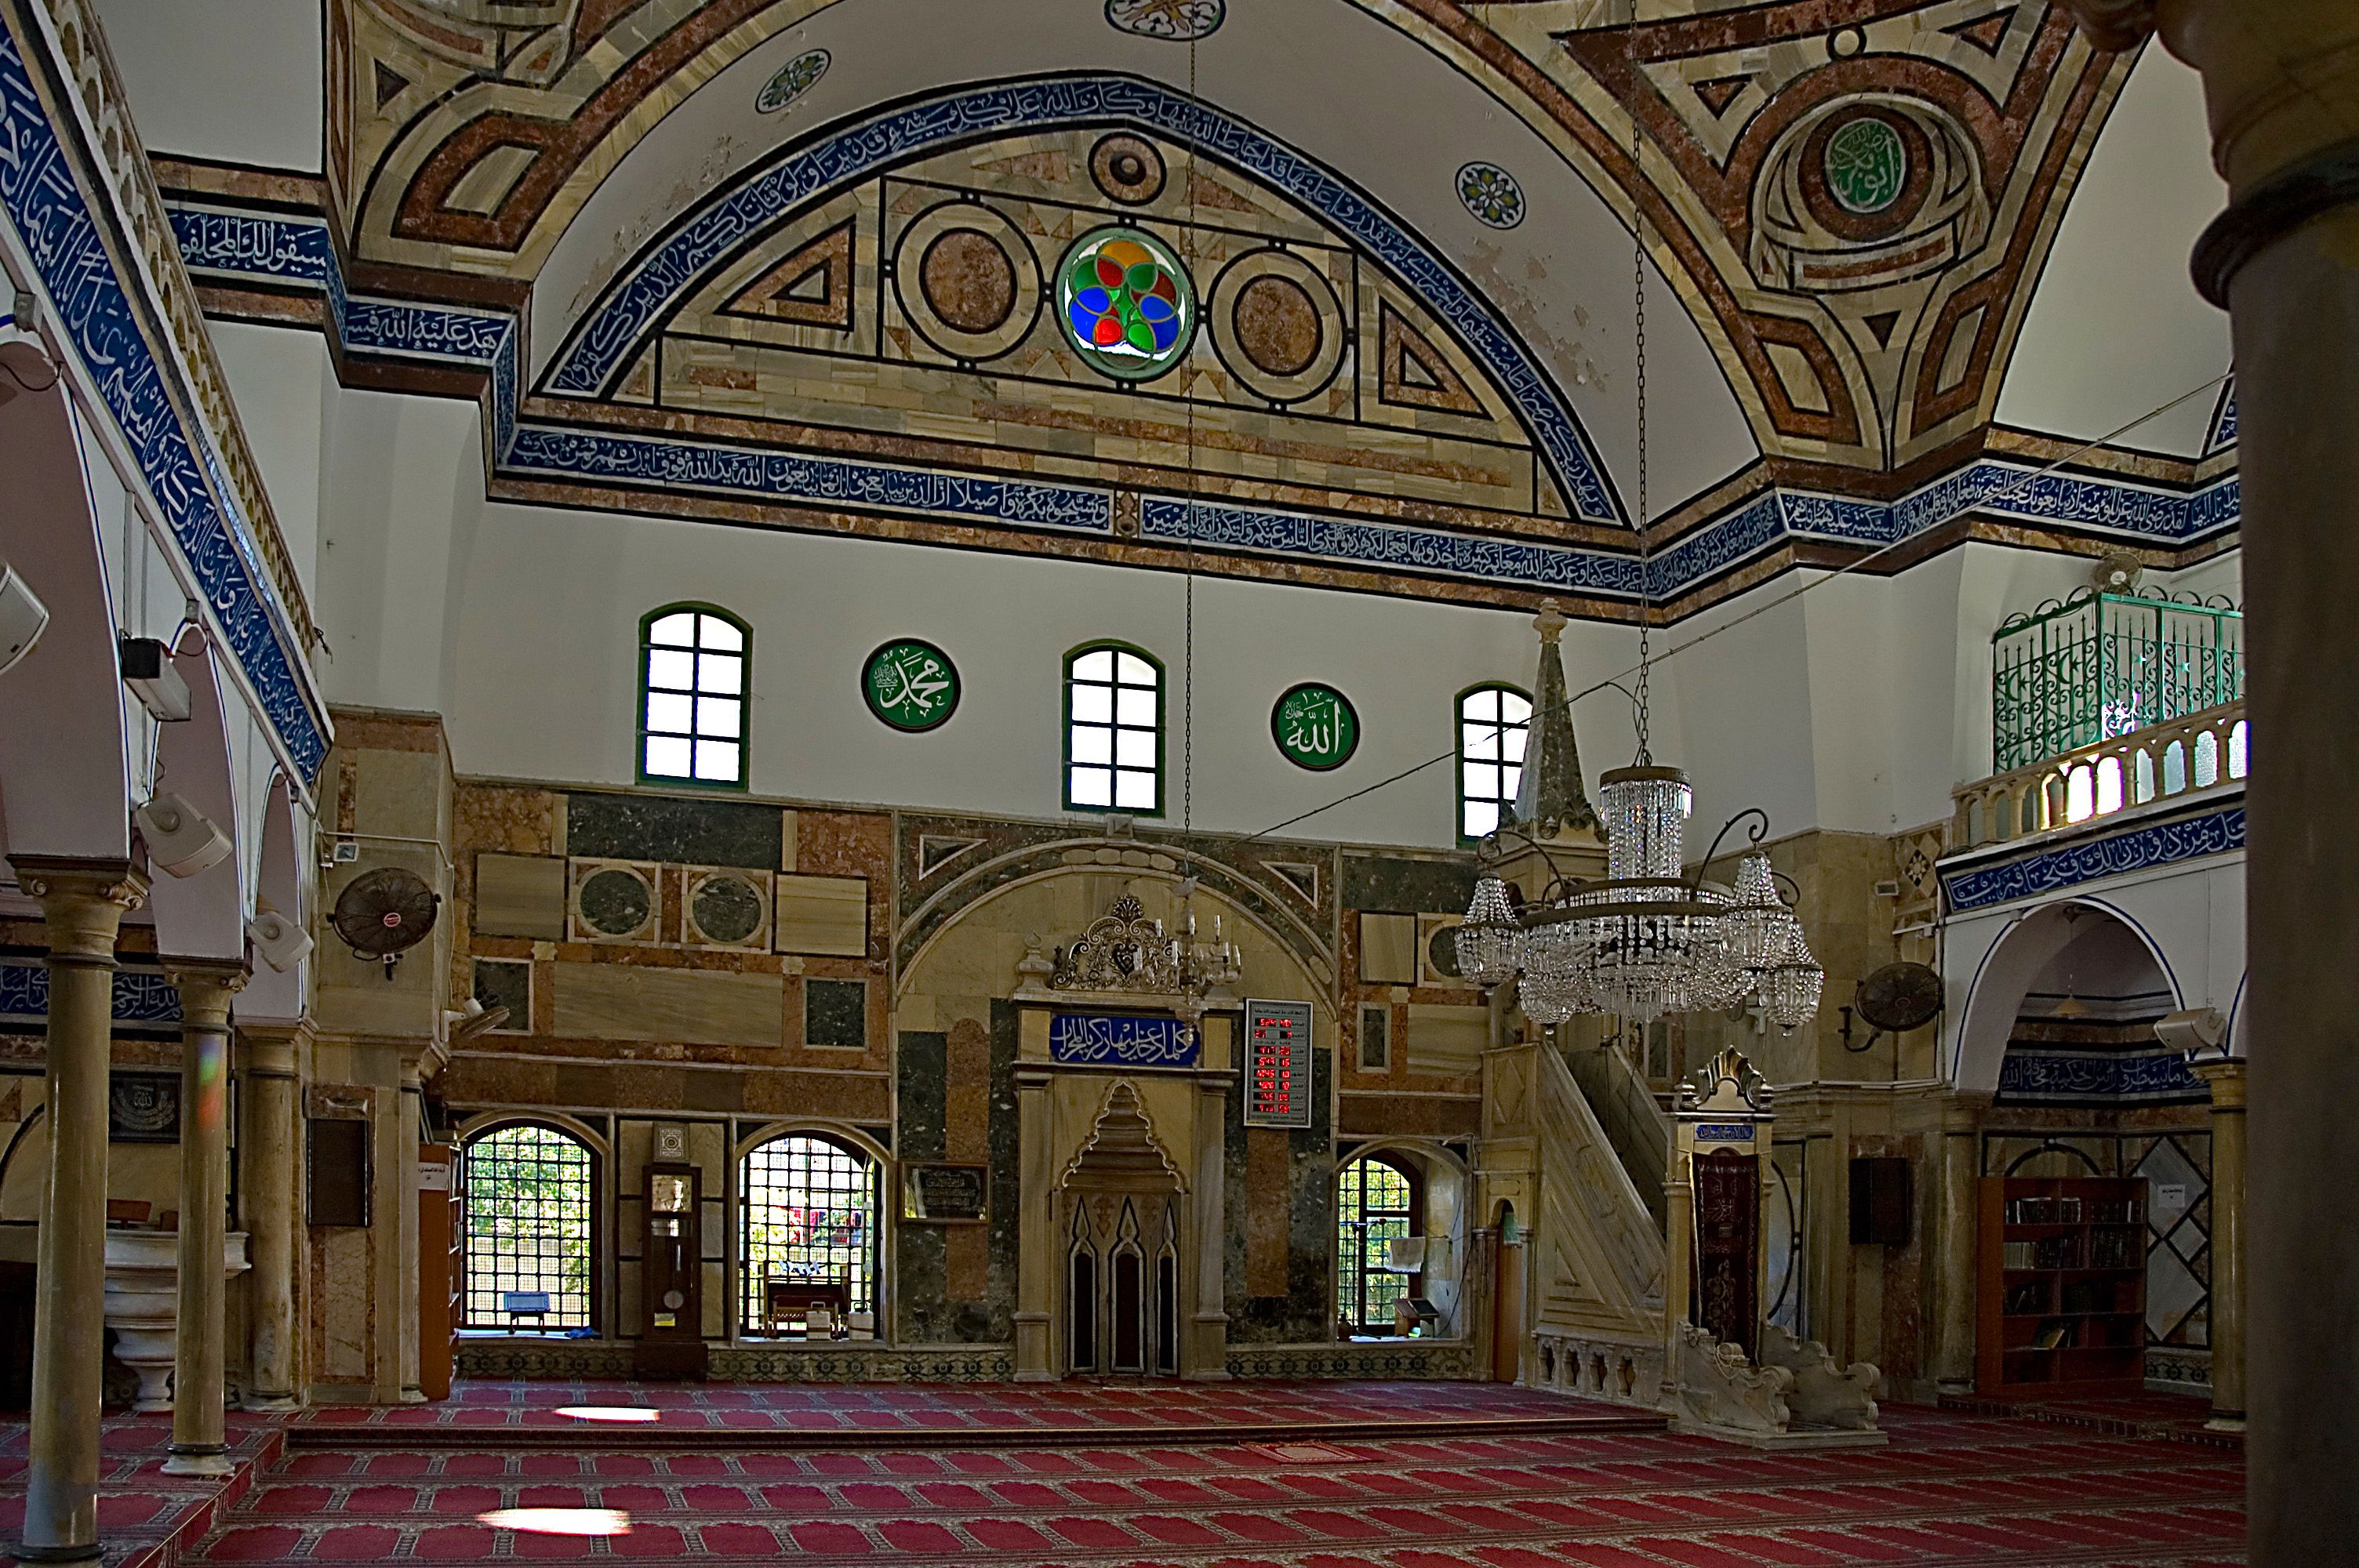 Akko's influential al Jezzar Mosque, built by the ruling Ottoman Pasha in the 1700s.